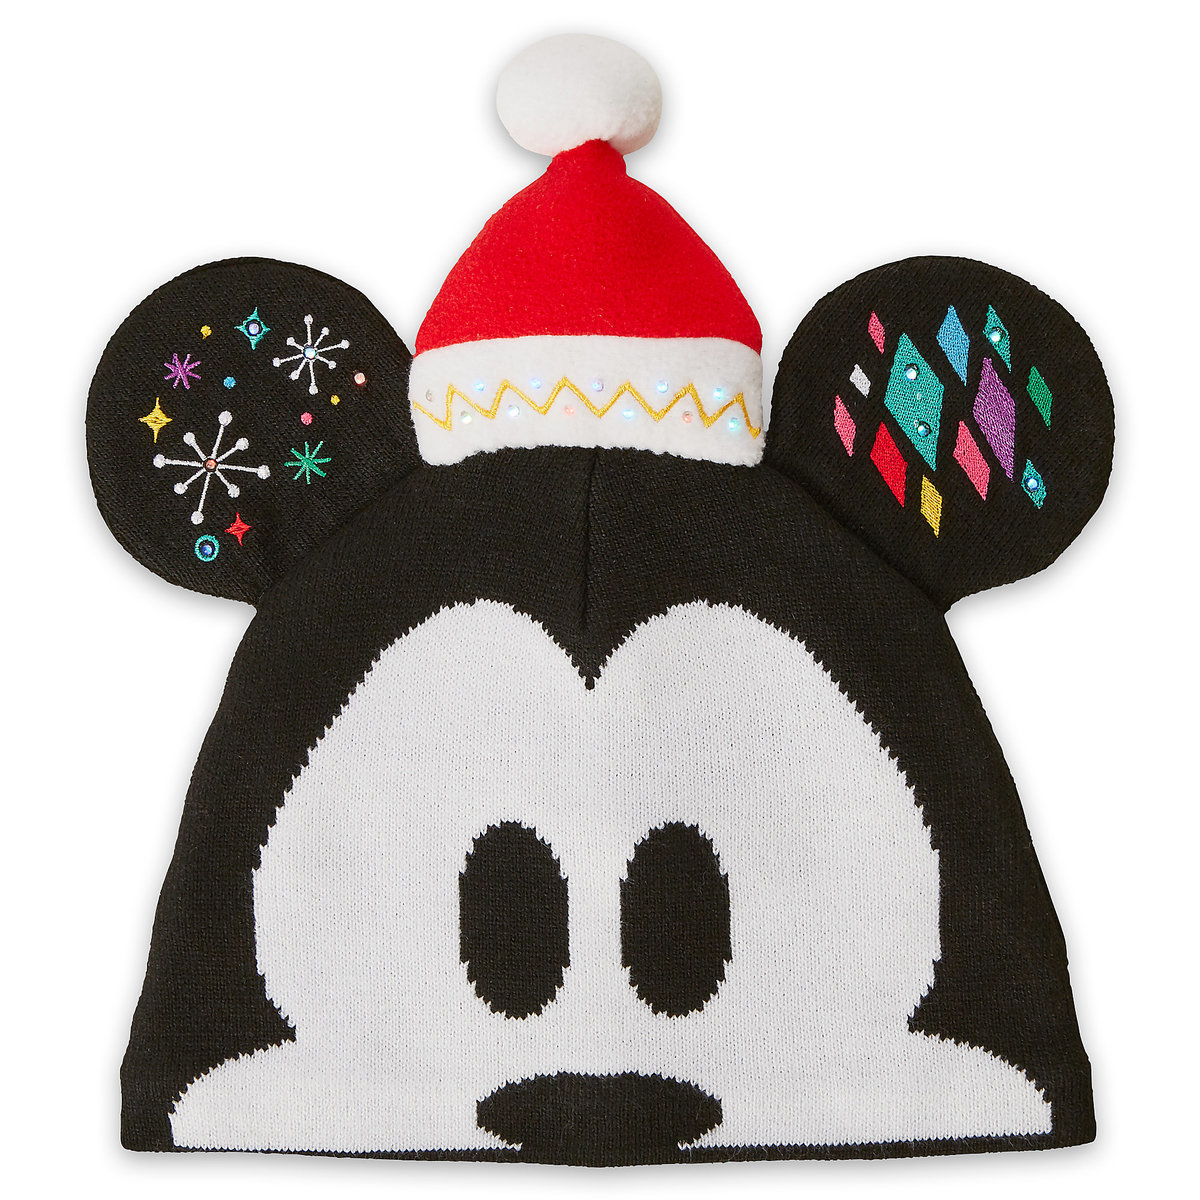 dbe2a7e5f2db5 Product Image of Mickey Mouse Light-Up Knit Holiday Ear Hat for Adults   1